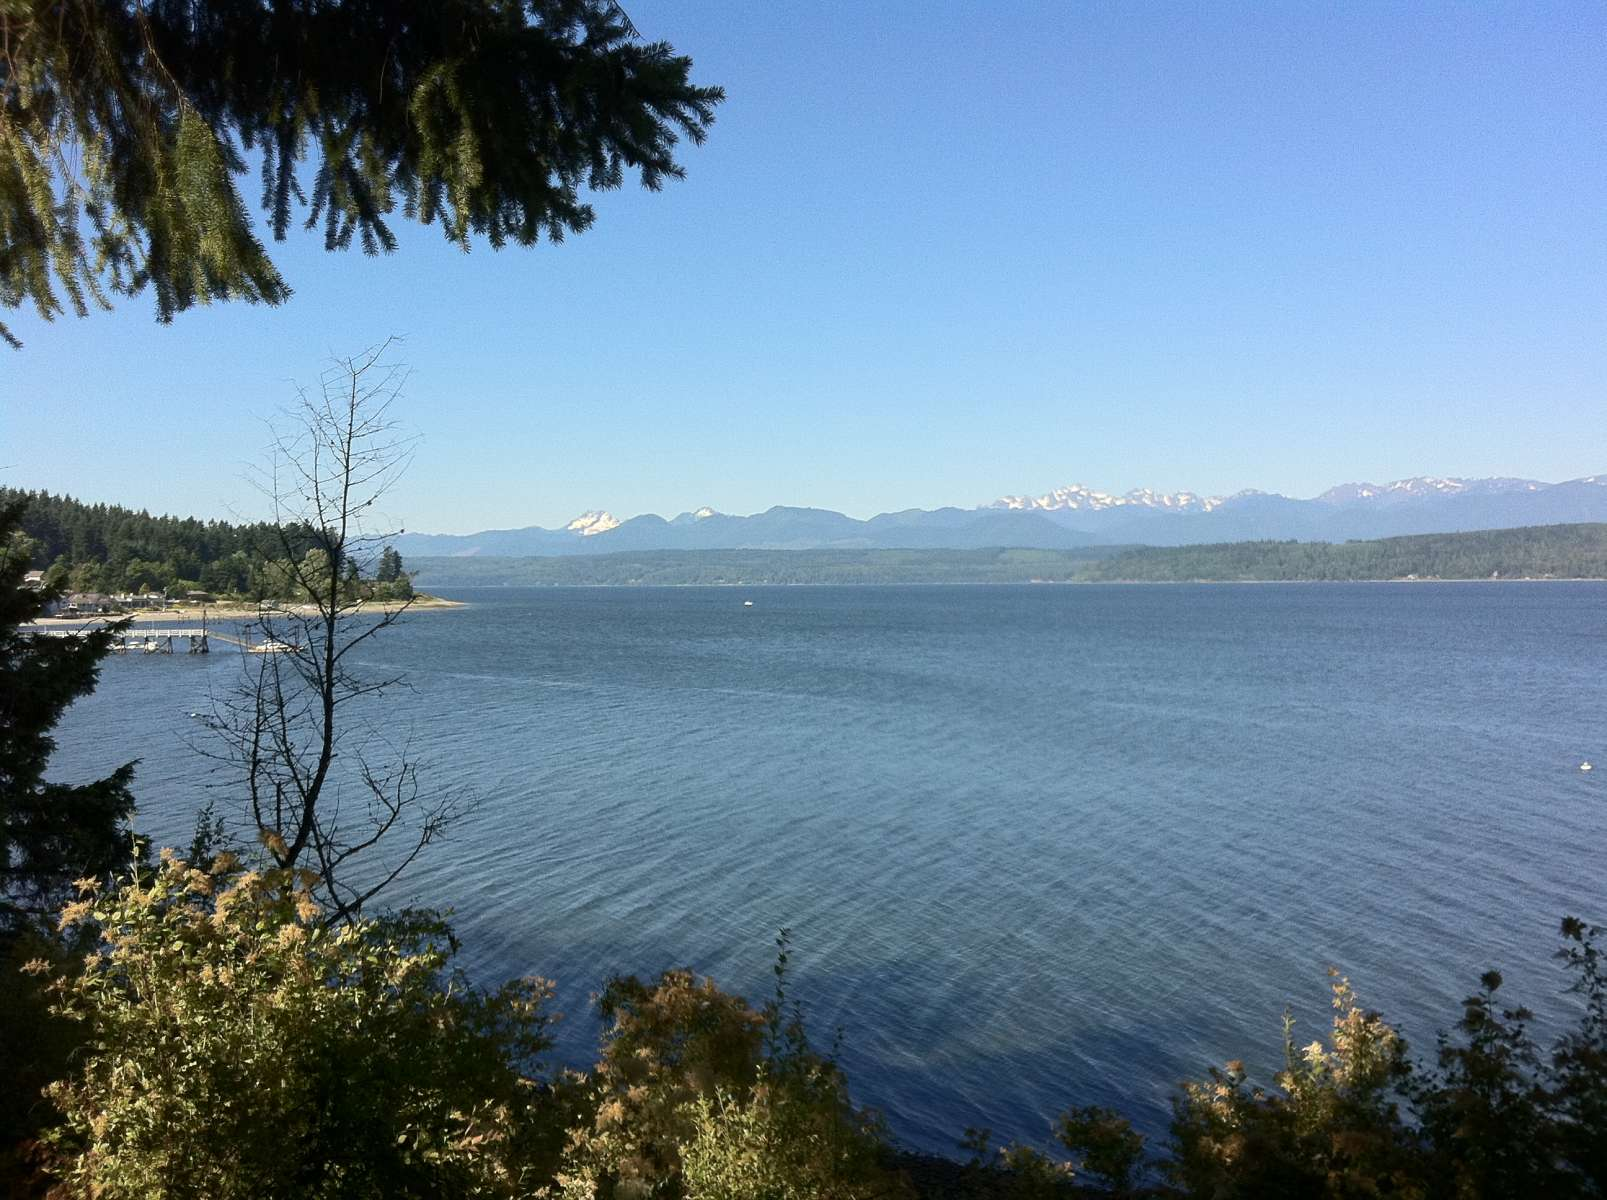 hipcamp kitsap memorial state park wa search private and public campgrounds